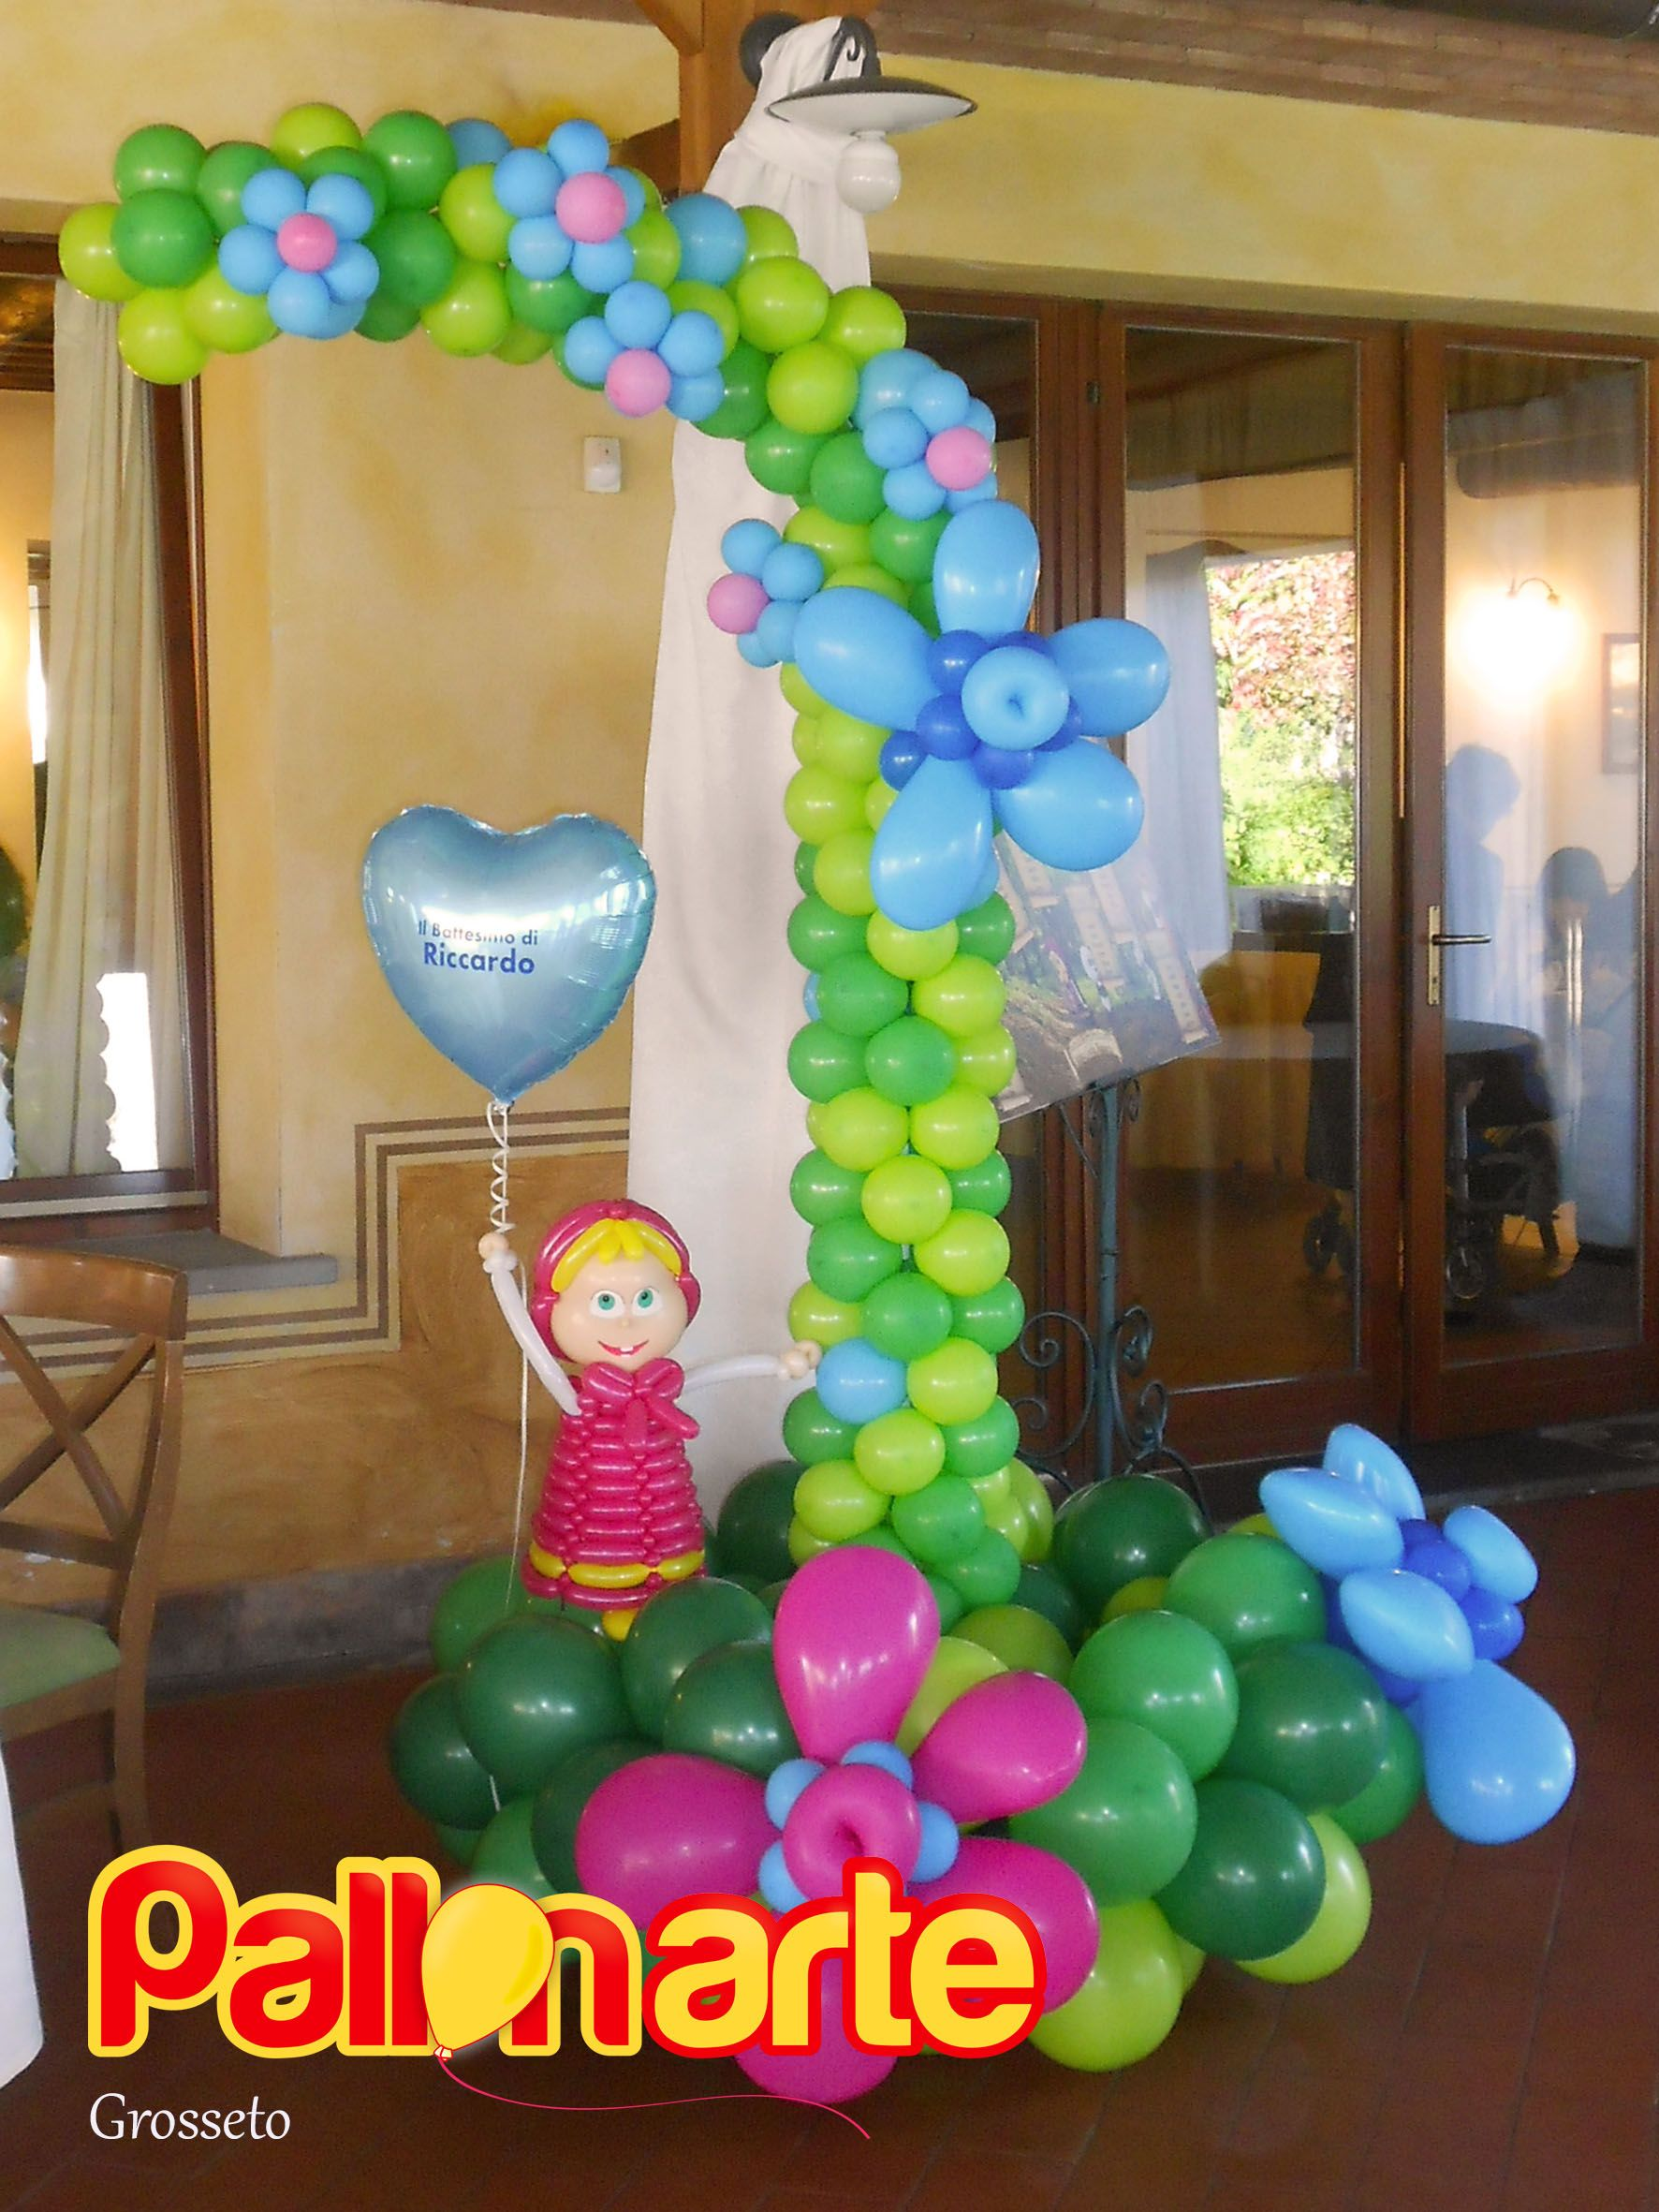 Owl Balloon Decorations Masha And The Bear Balloon Decoration Masha E Orso Pallonarte